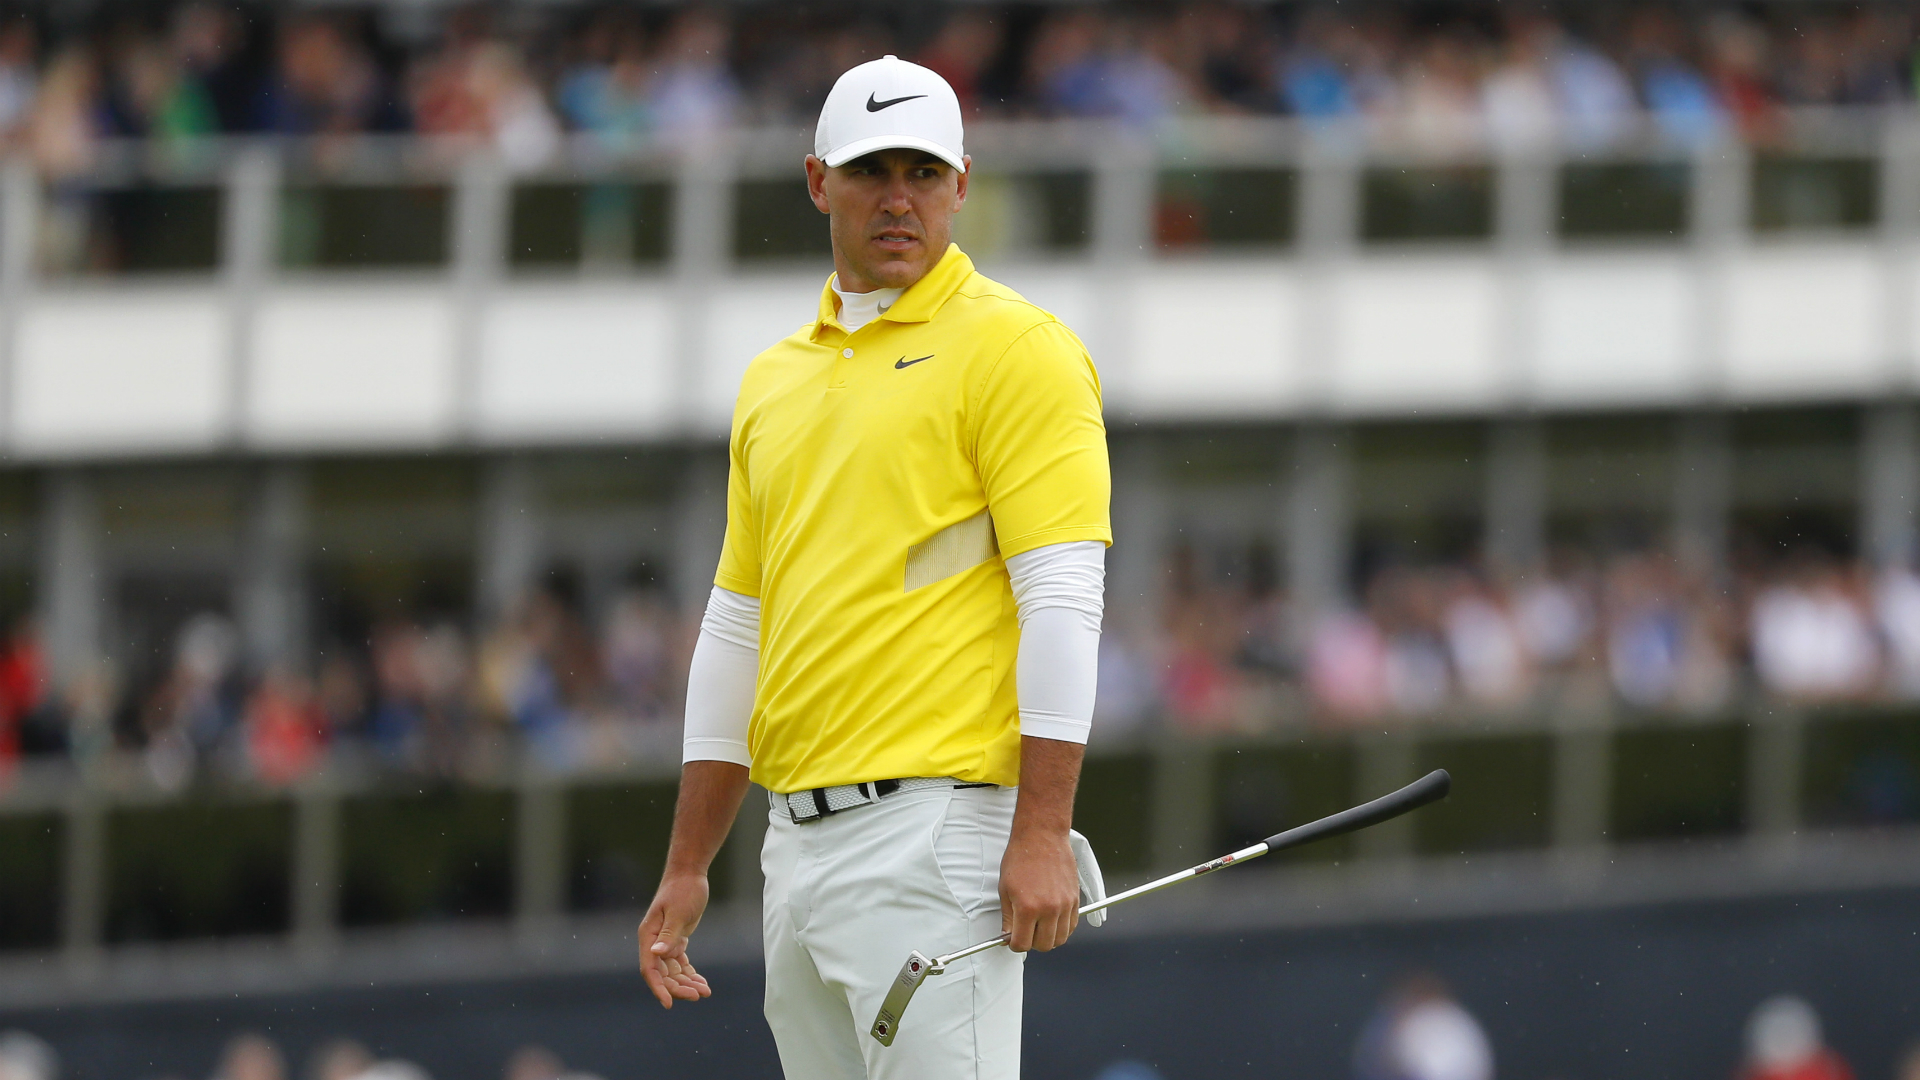 Brooks Koepka could not land another major at The Open but his stunning season has earned him another place in golf's history books.